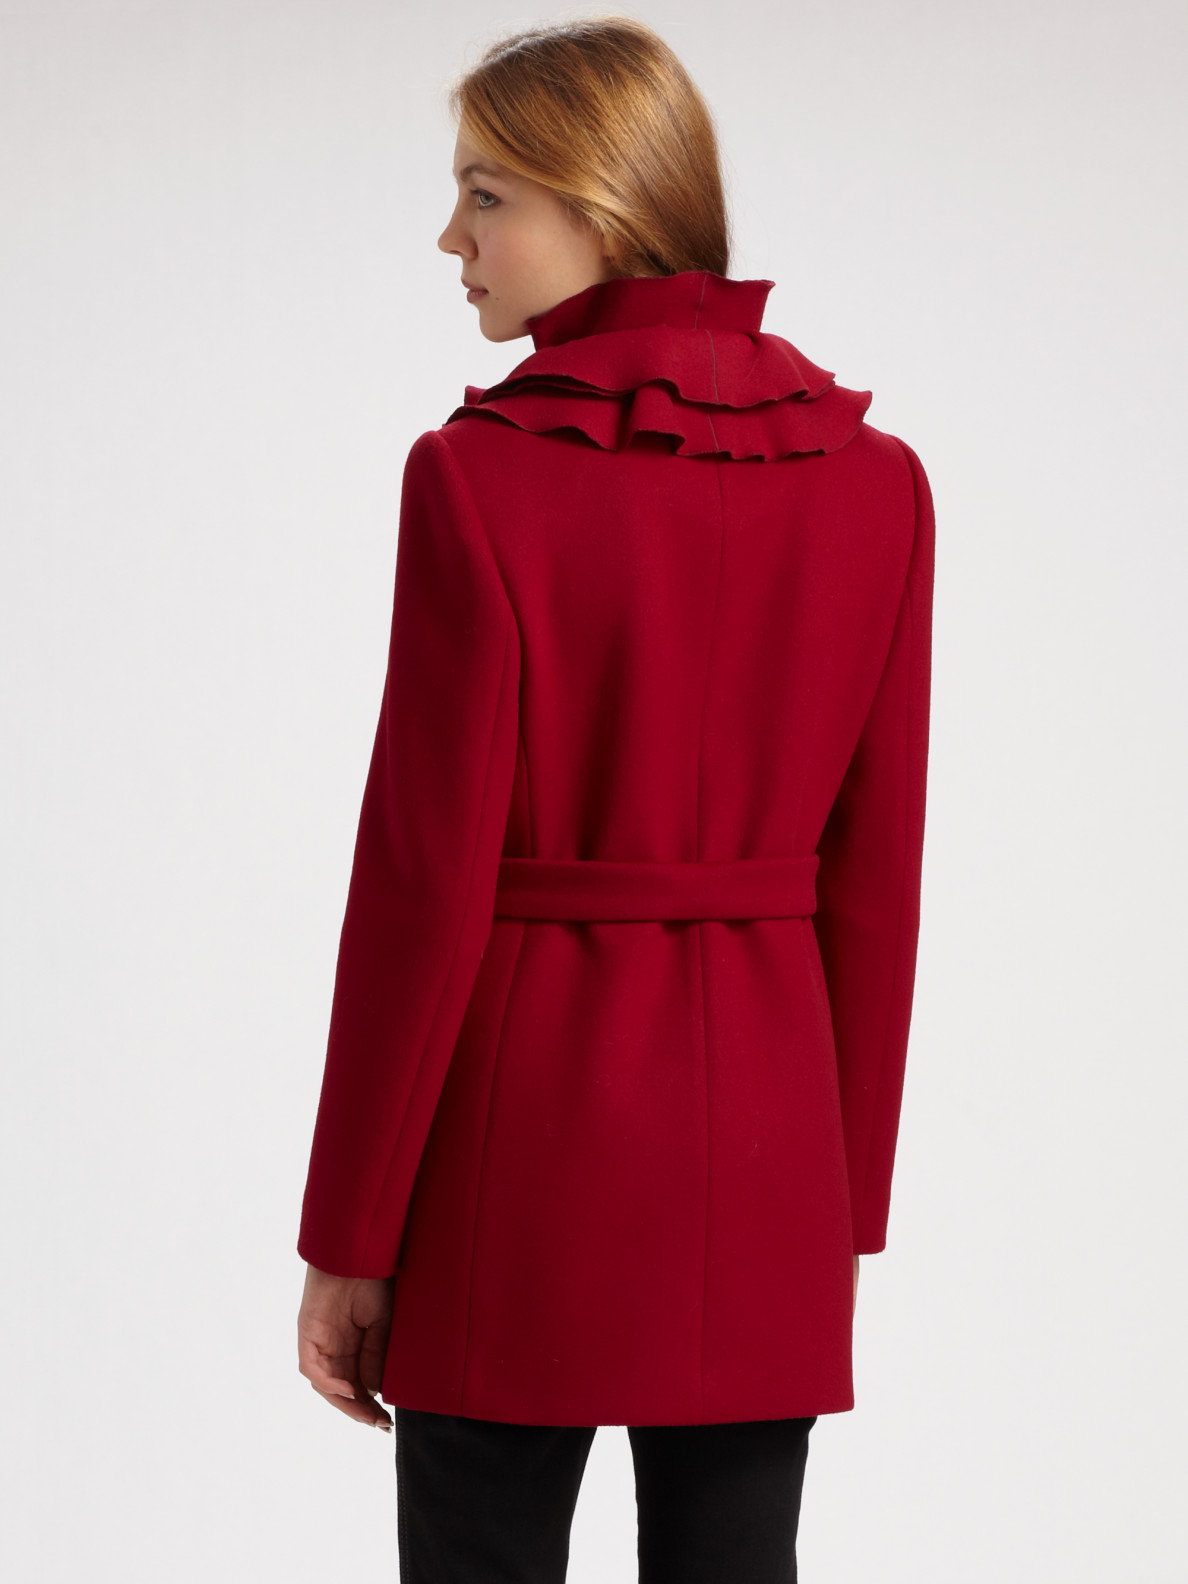 The Rainbow Colored Organza Ruffle Overcoat is our bestselling boa coat. These huge coats are perfect for Gay Pride in Gay Flag colors. Other popular colors are our black organza ruffle long coat, our fuchsia organza ruffle floor-length coat with long sleeves and our bright red organza ruffle coat in over-sized ruffled organza sleeves.